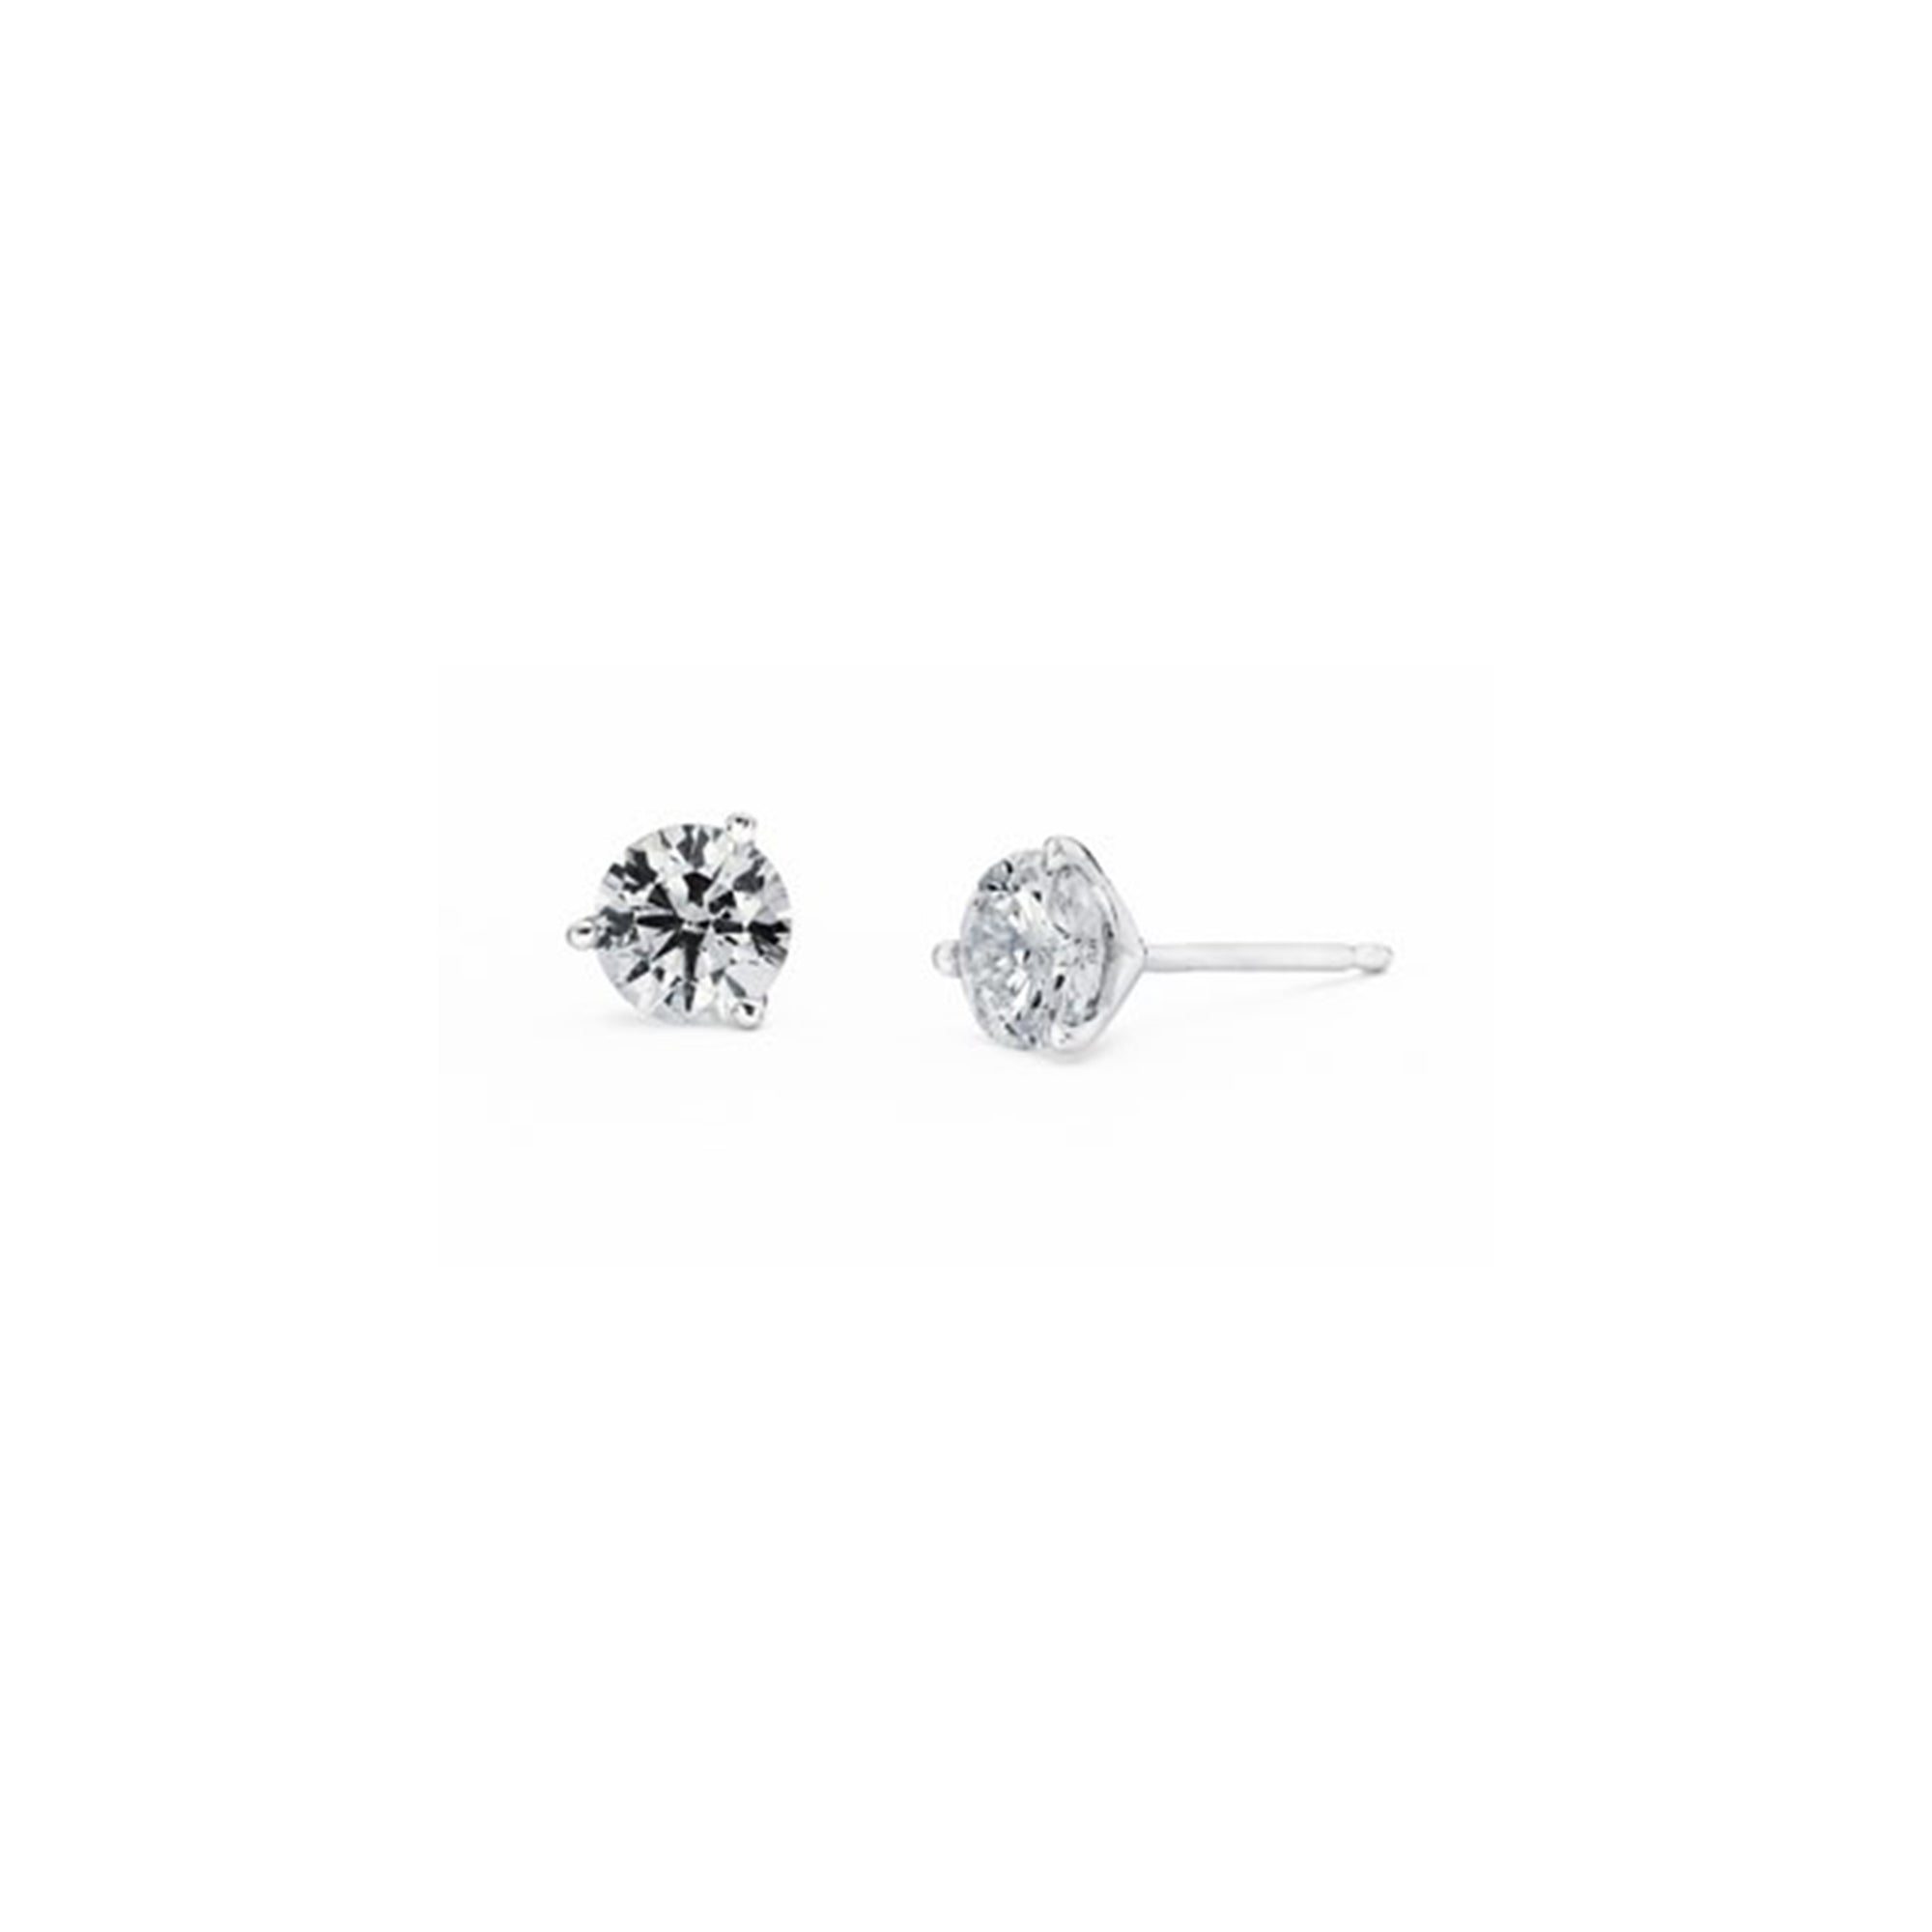 Diamond Stud 3-Prong Earrings, 0.25 Carat Total Weight in 14k White, Yellow or Rose Gold - Talisman Collection Fine Jewelers